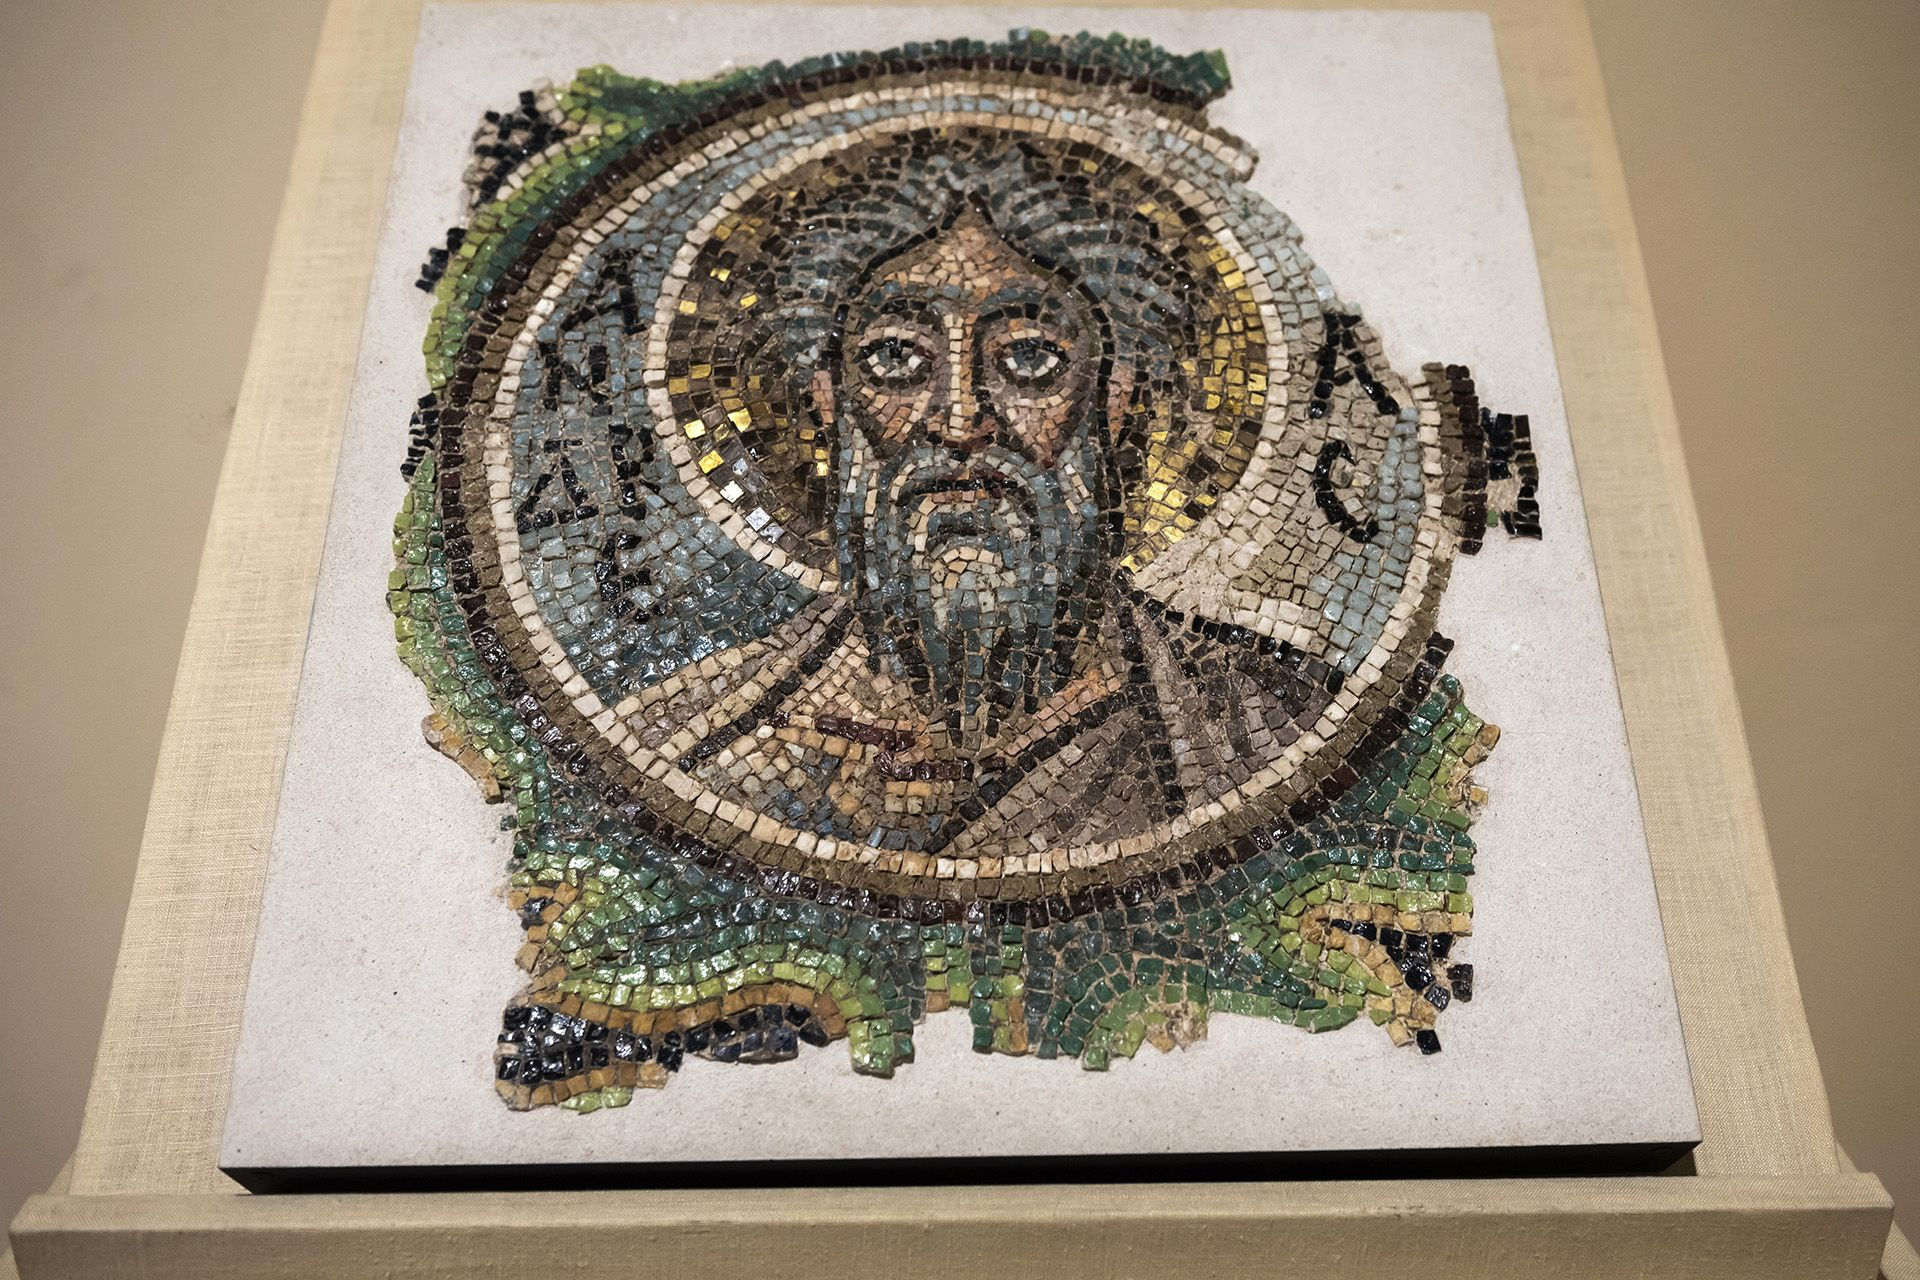 Looted Byzantine mosaic goes on display at Cyprus museum